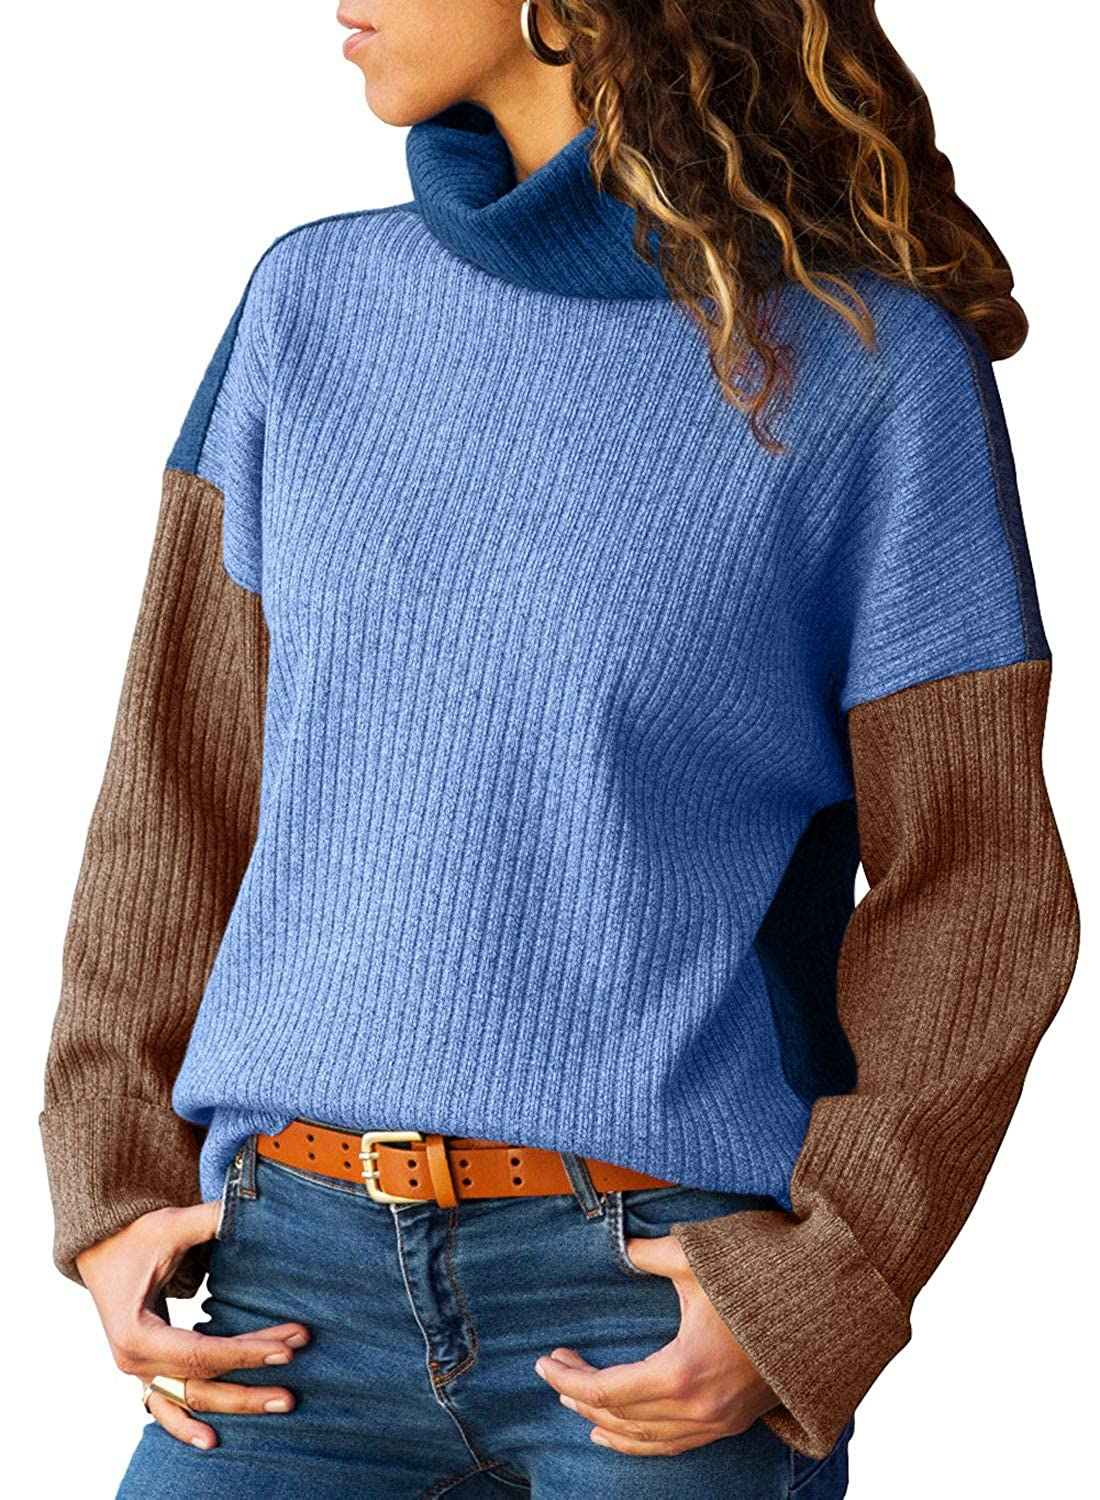 AlvaQ Womens Color Block Turtleneck Knit Pullover Sweater(5 Colors S-XXL) AQ27828